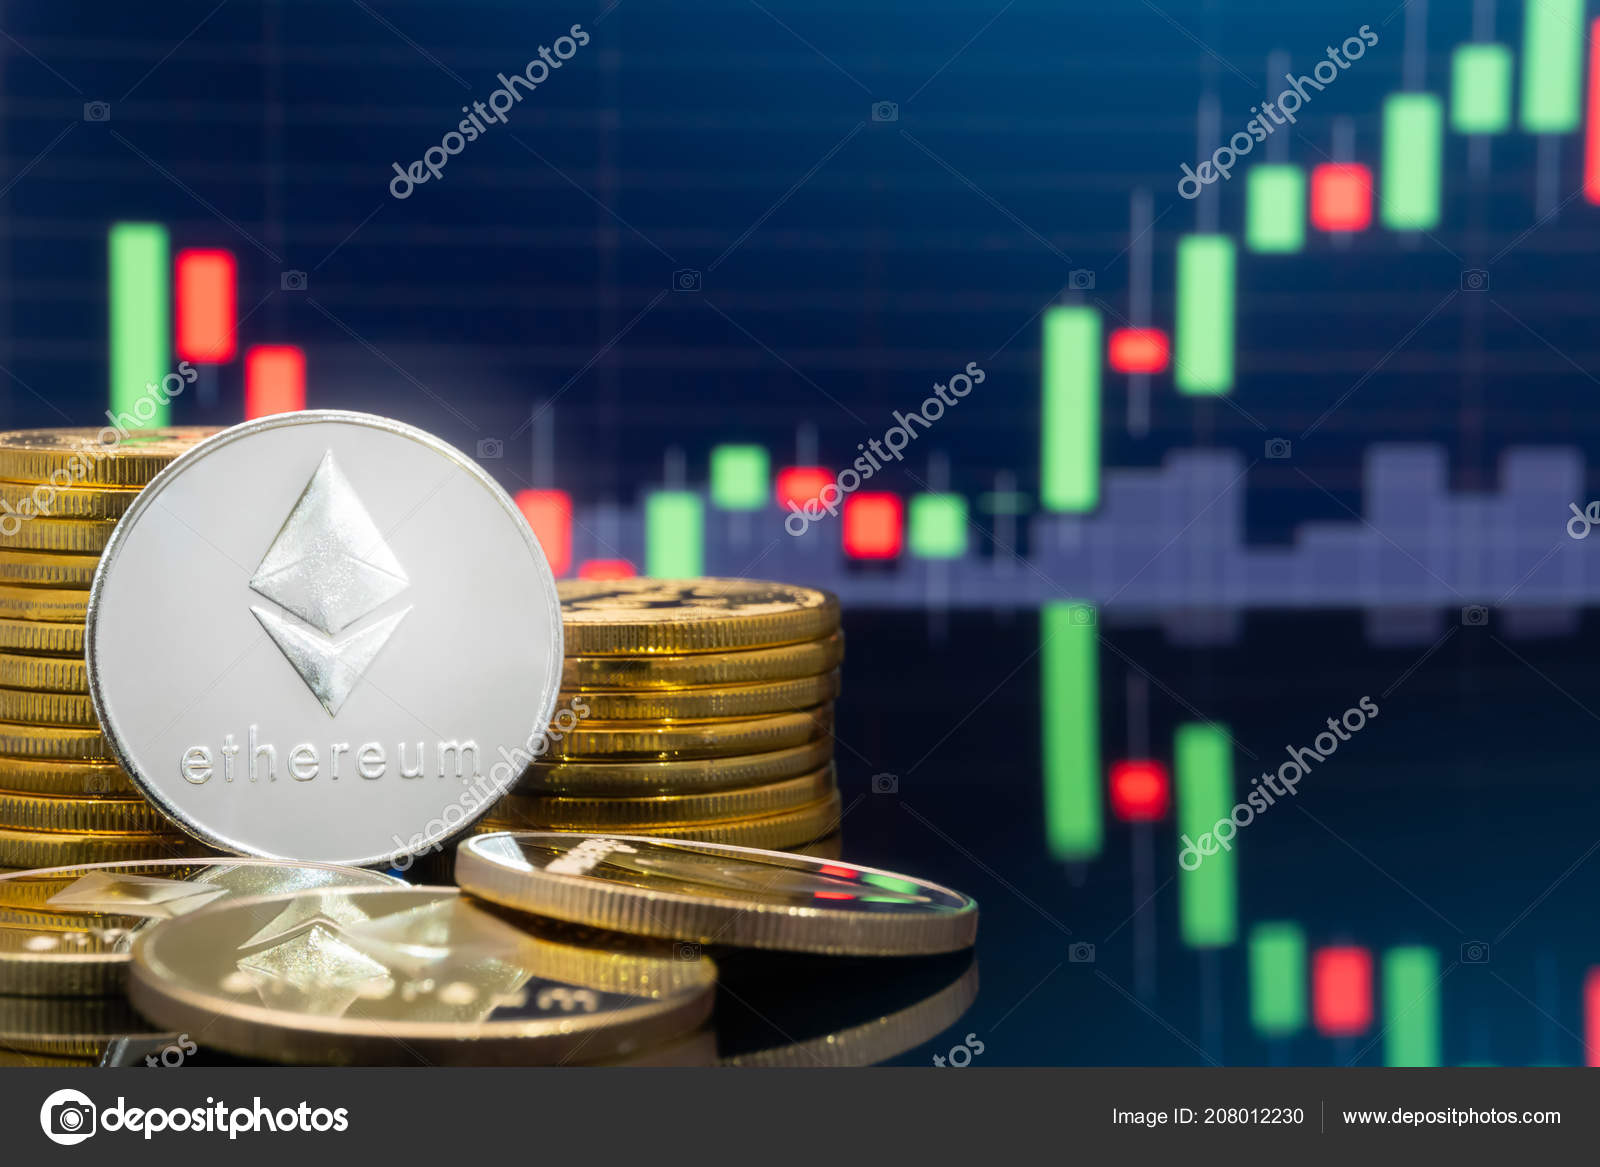 Ethereum Eth Cryptocurrency Investing Concept Physical Metal